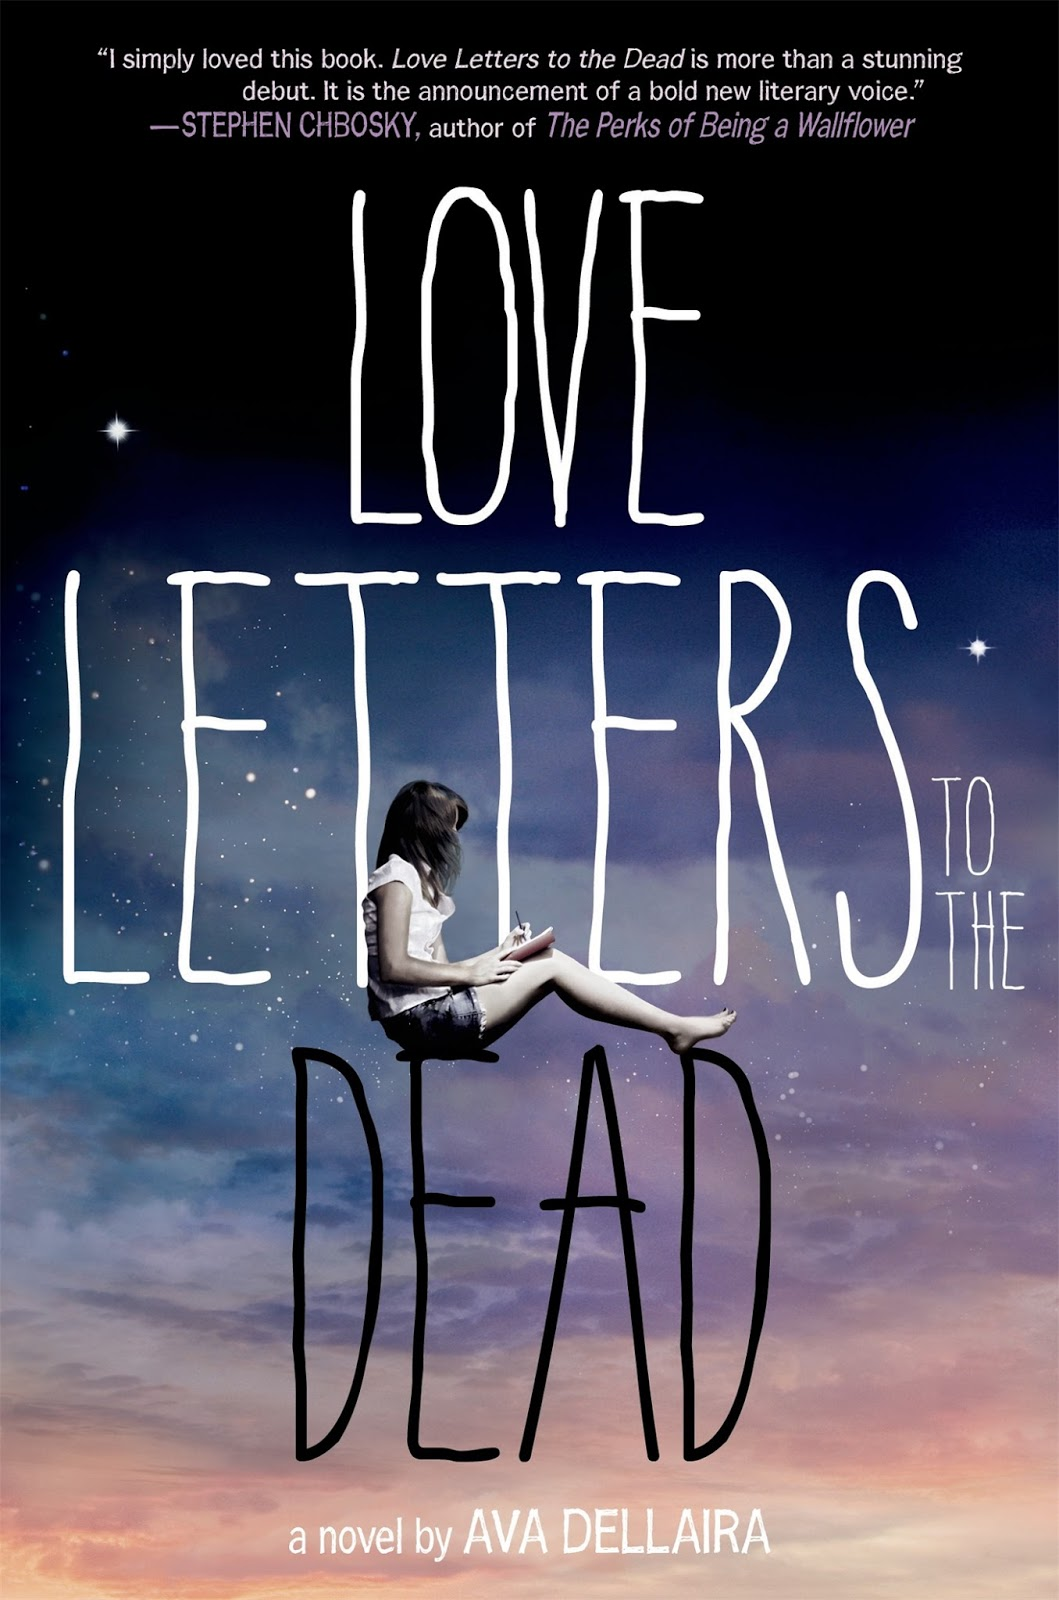 Love Letters To The Dead Ava Dellaira cover